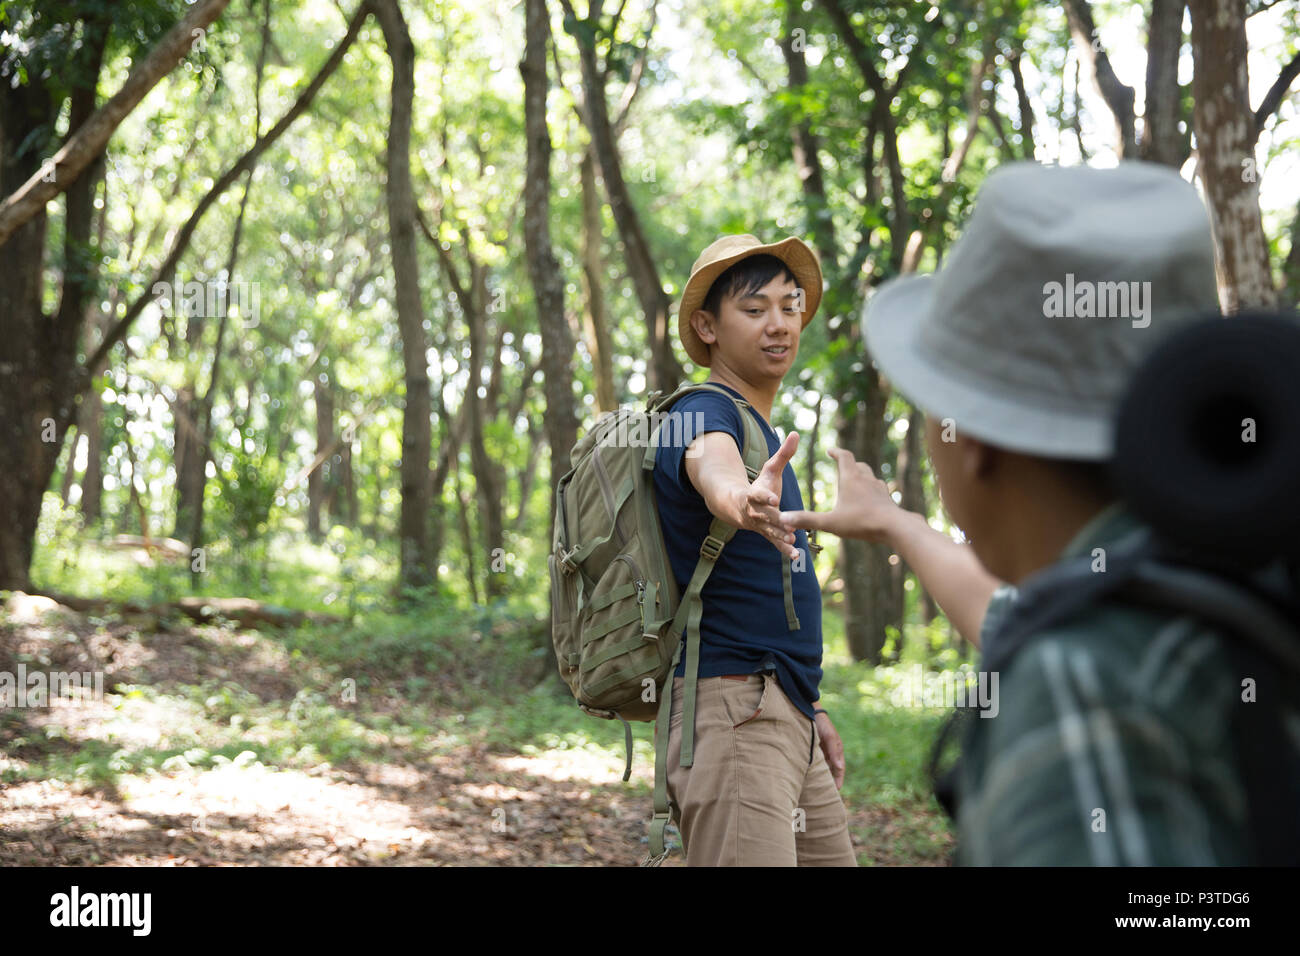 support friend to walk while hiking - Stock Image